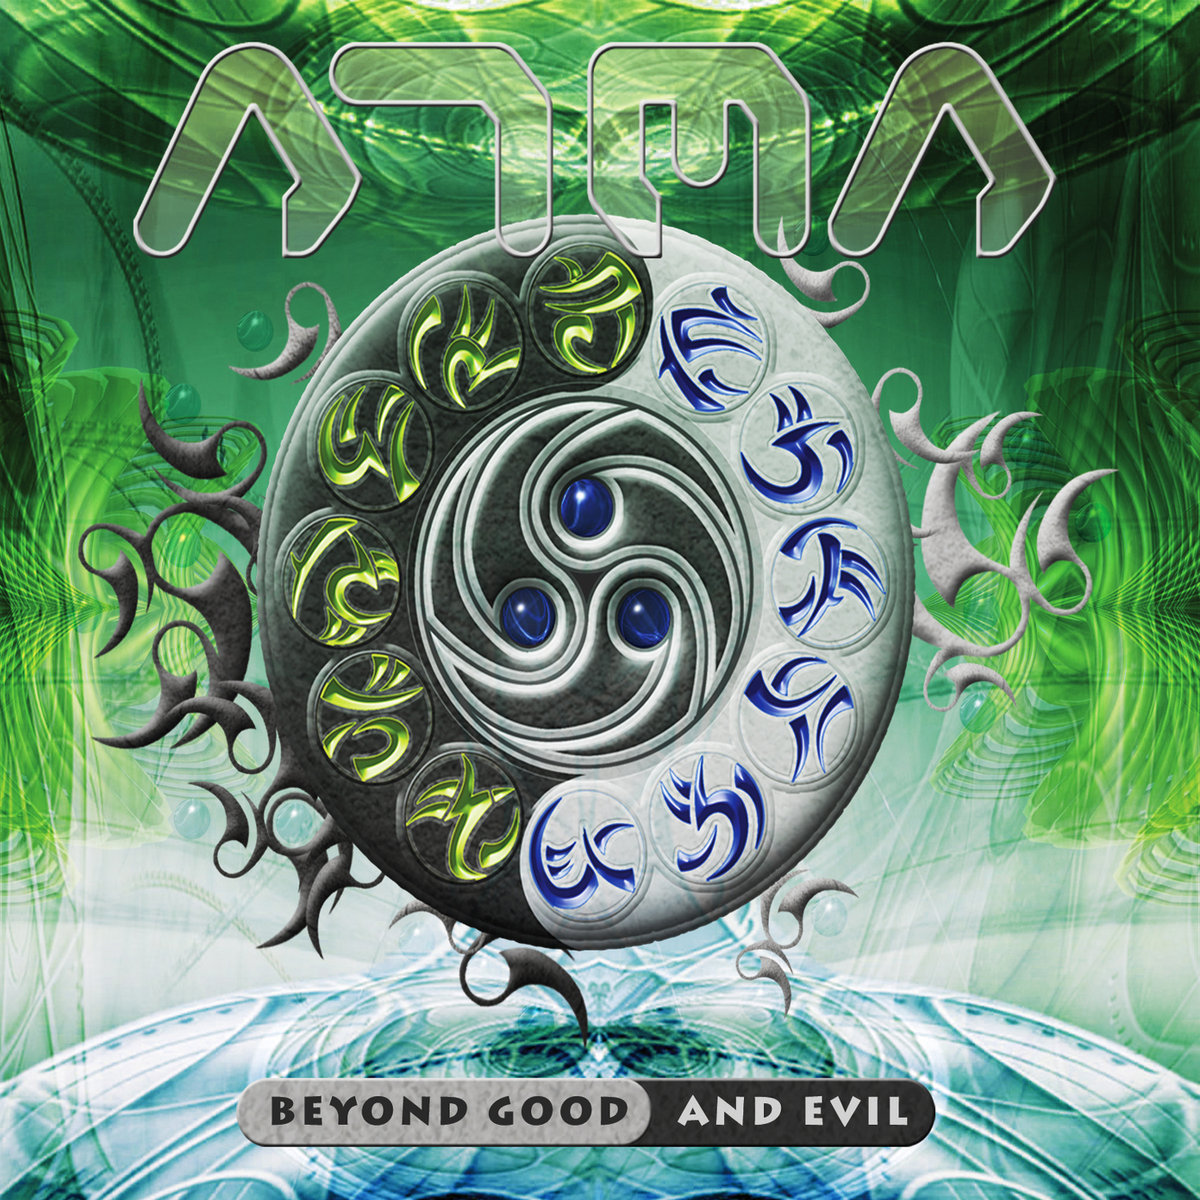 Atma - We Will Rise Again @ 'Beyond Good and Evil' album (electronic, goa)